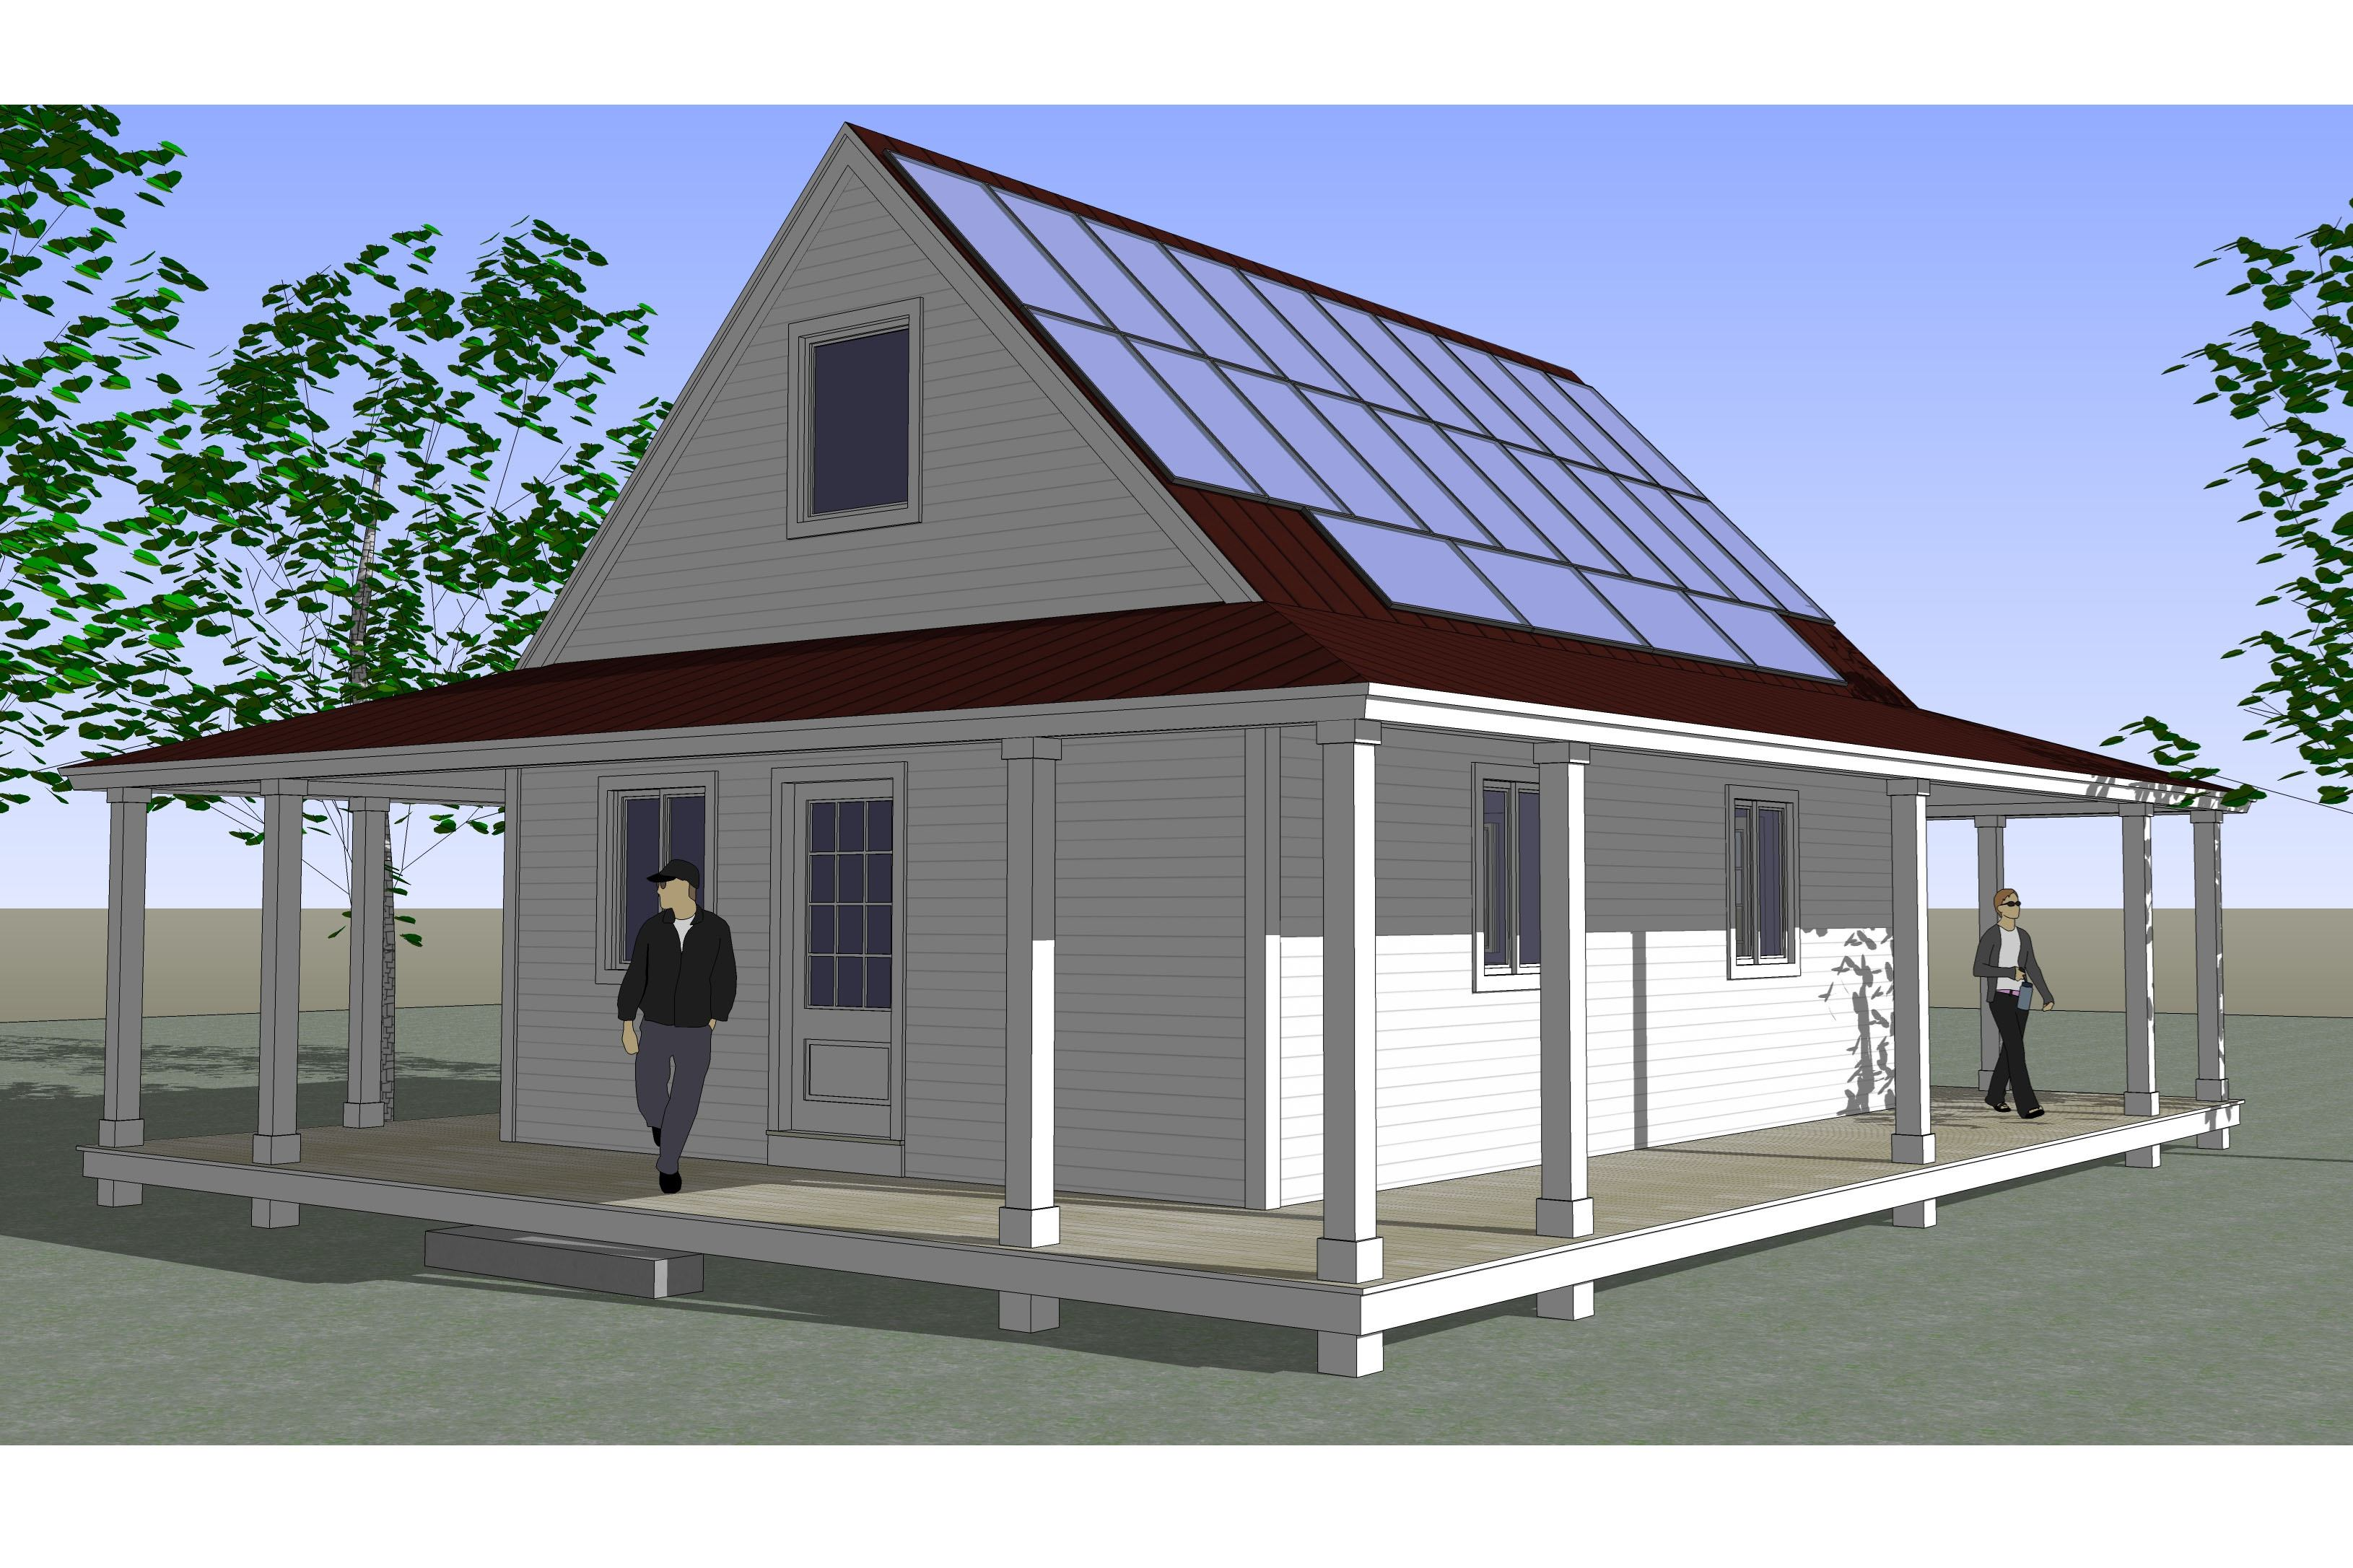 13 simple affordable energy efficient home plans ideas for Efficient homes